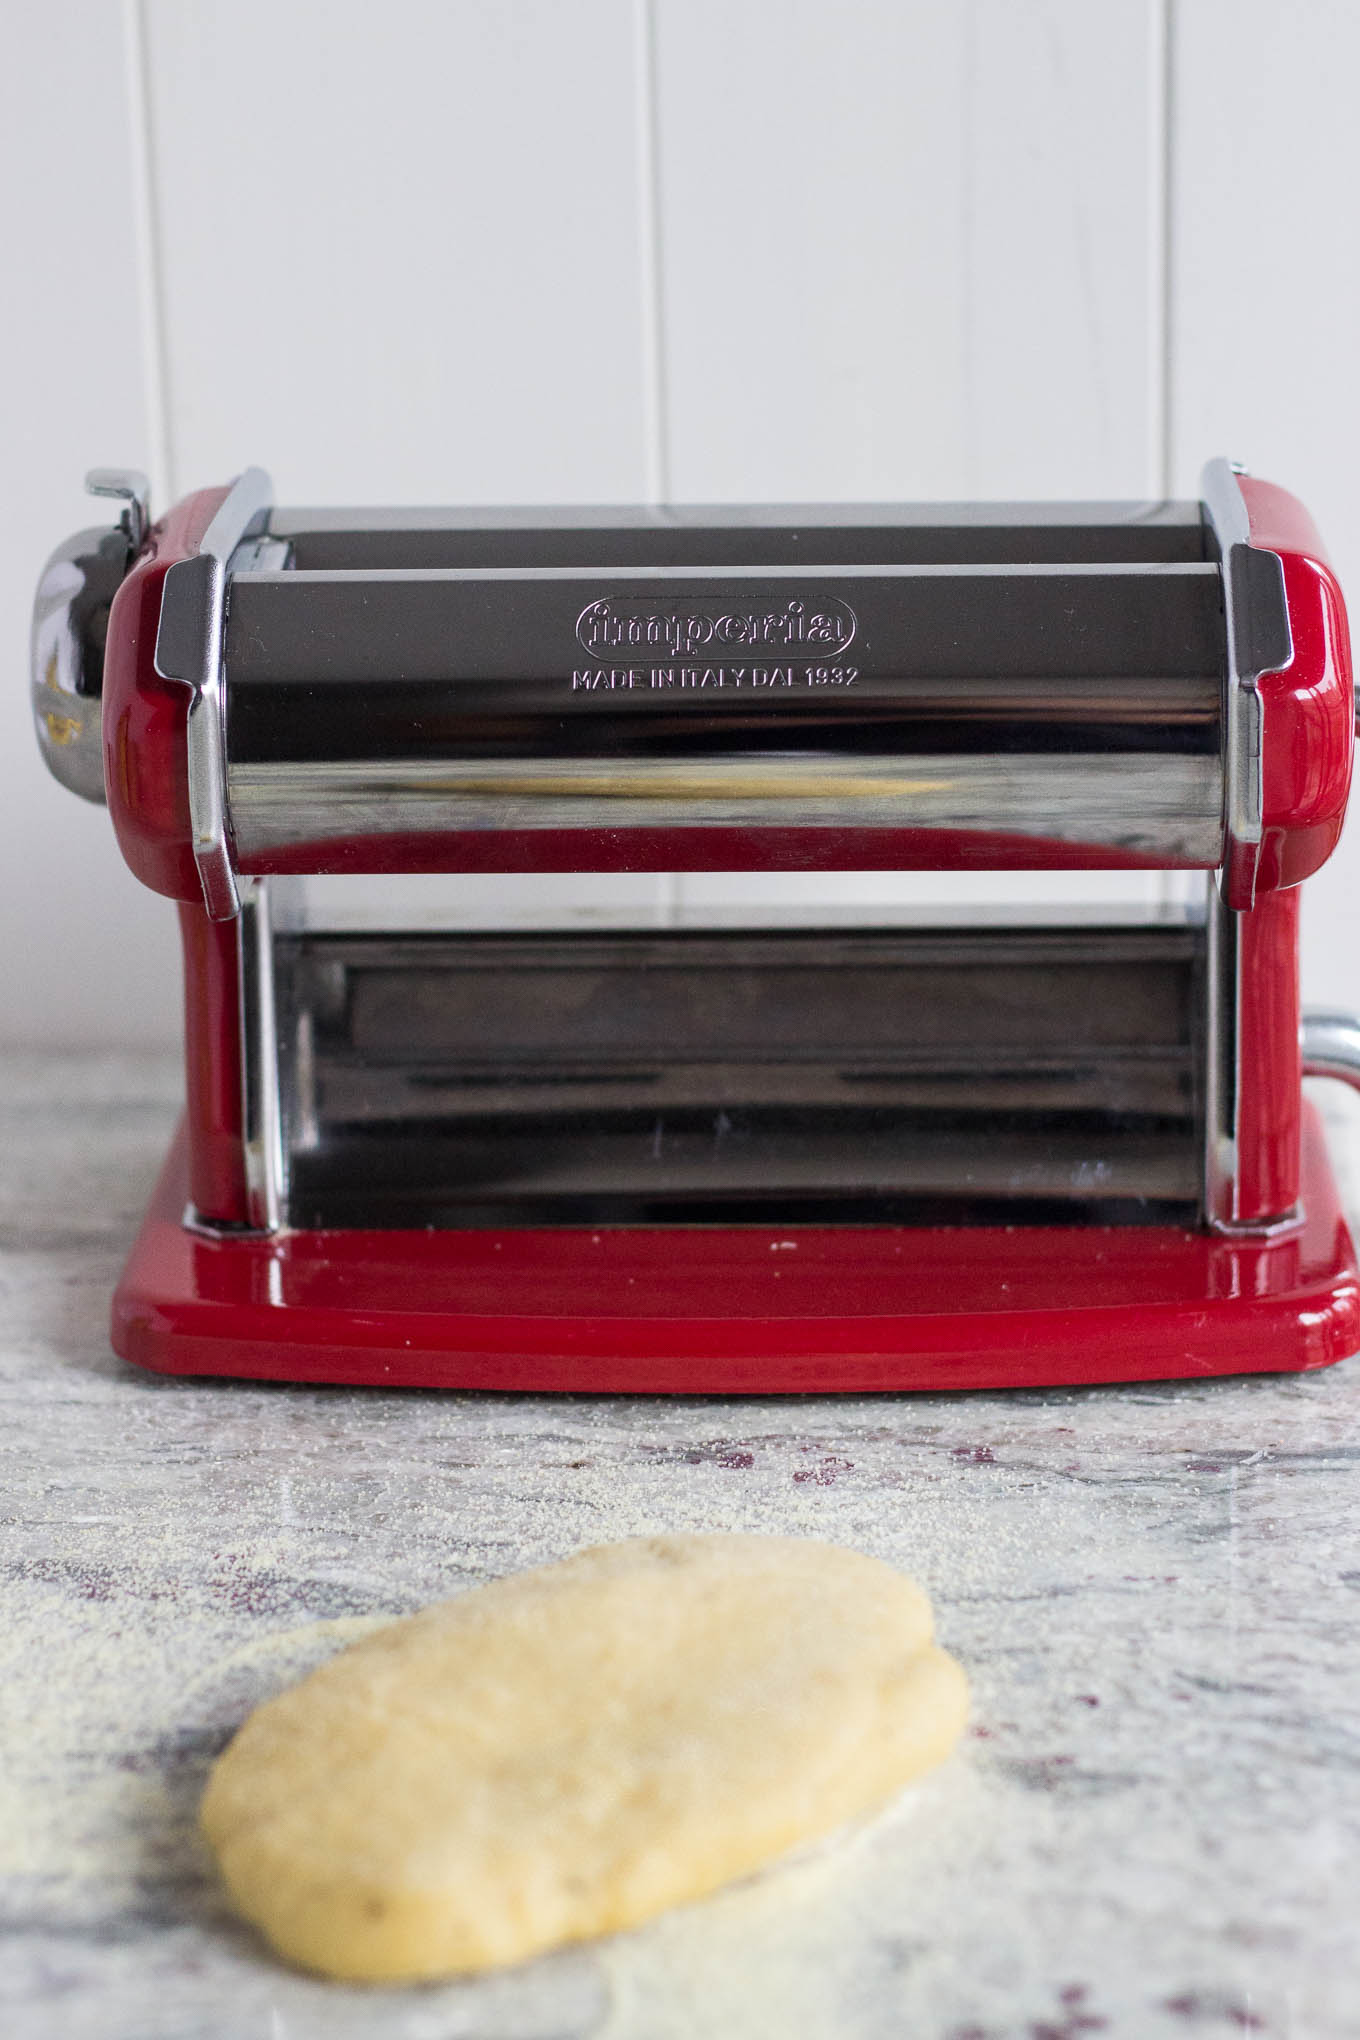 homemade pasta dough in front of pasta machine